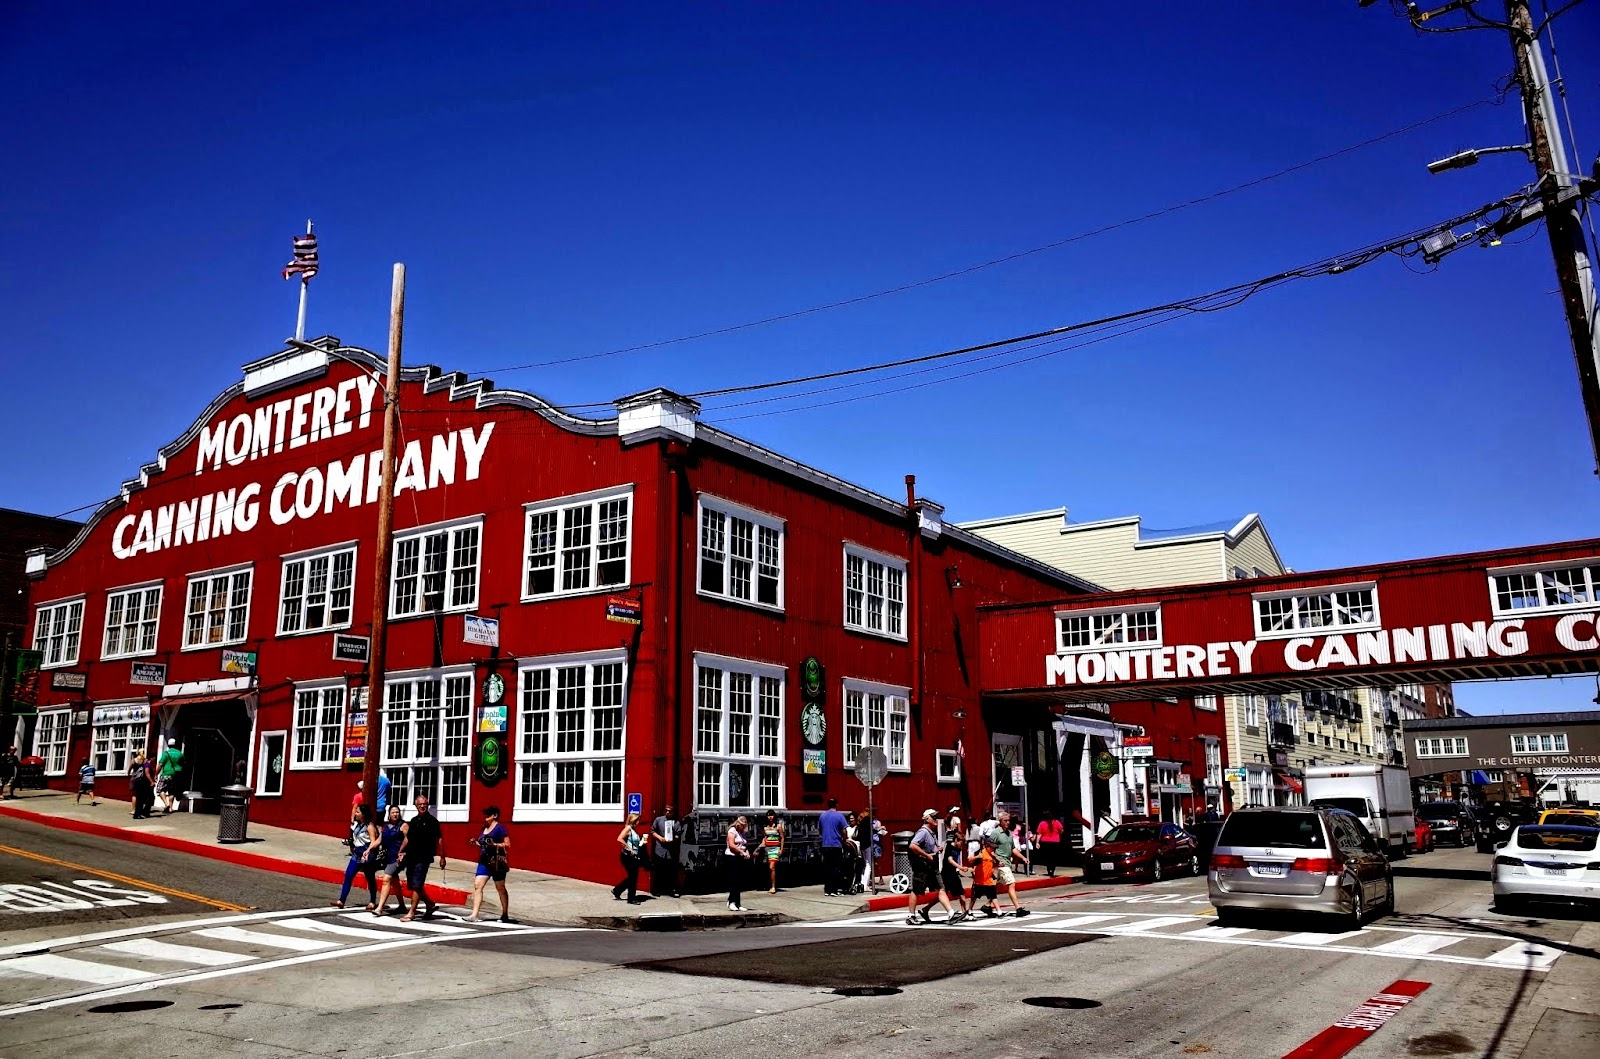 monterey canning company big red building and two pedestrian crossings with people on a clear summer day in california